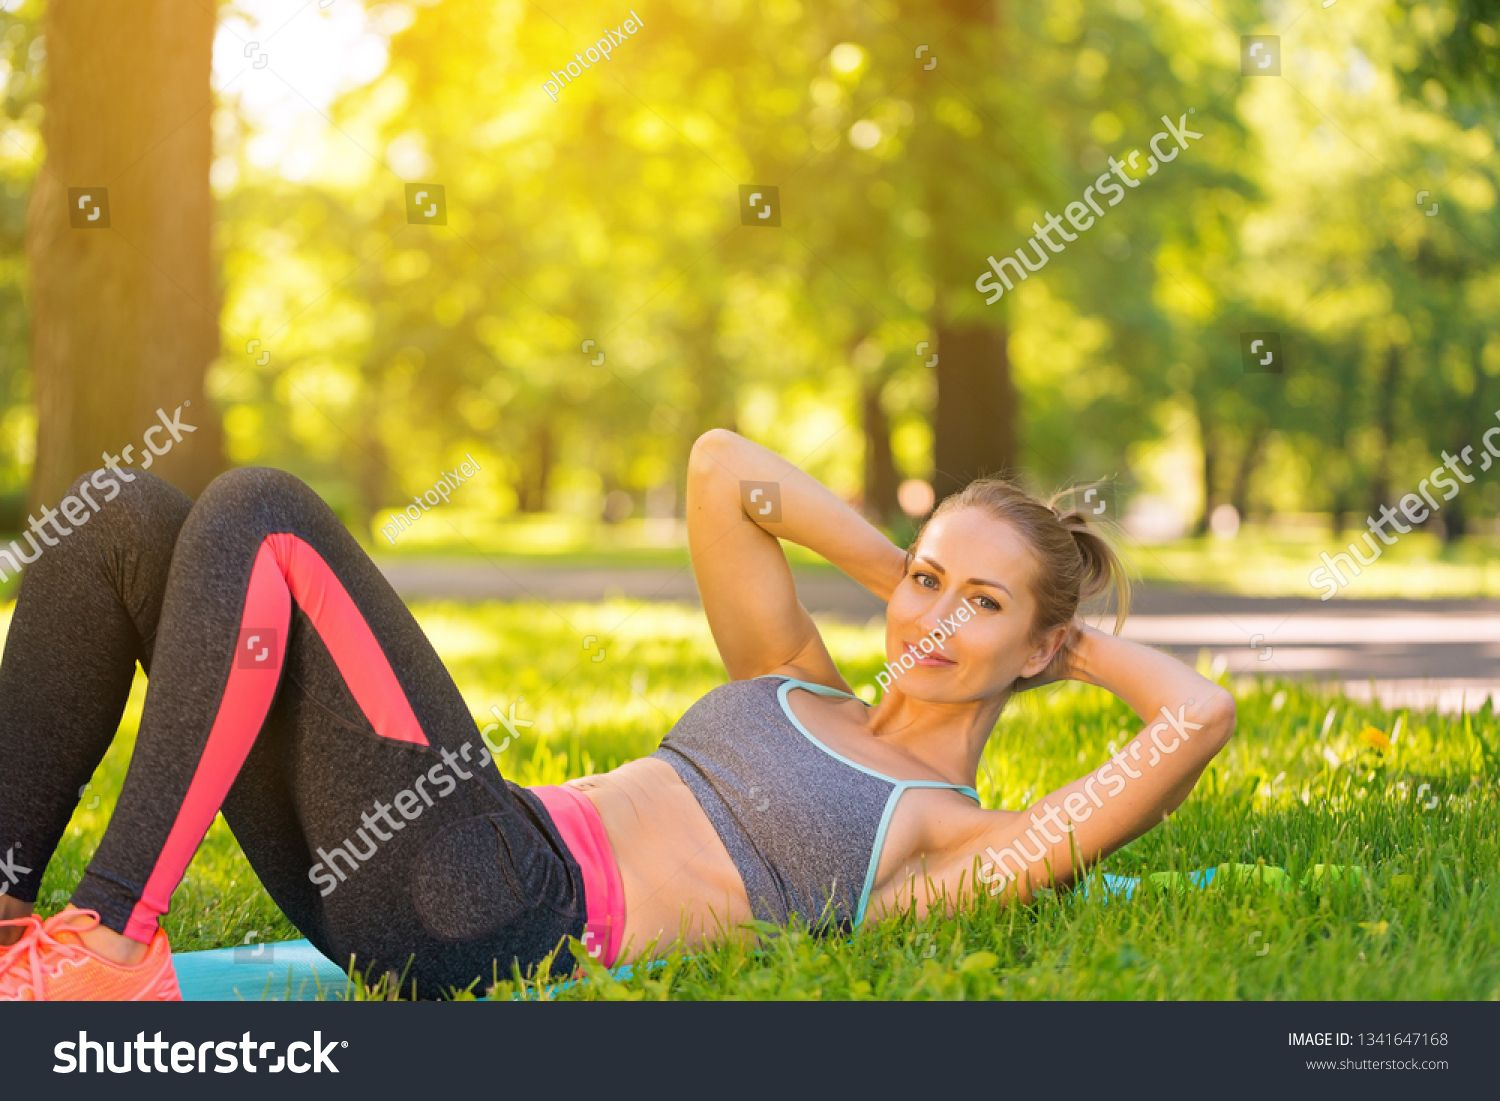 Young fit woman doing abdominal crunch and training outside on green grass at park. Fitness, sport and healthy lifestyle, abs workout ,